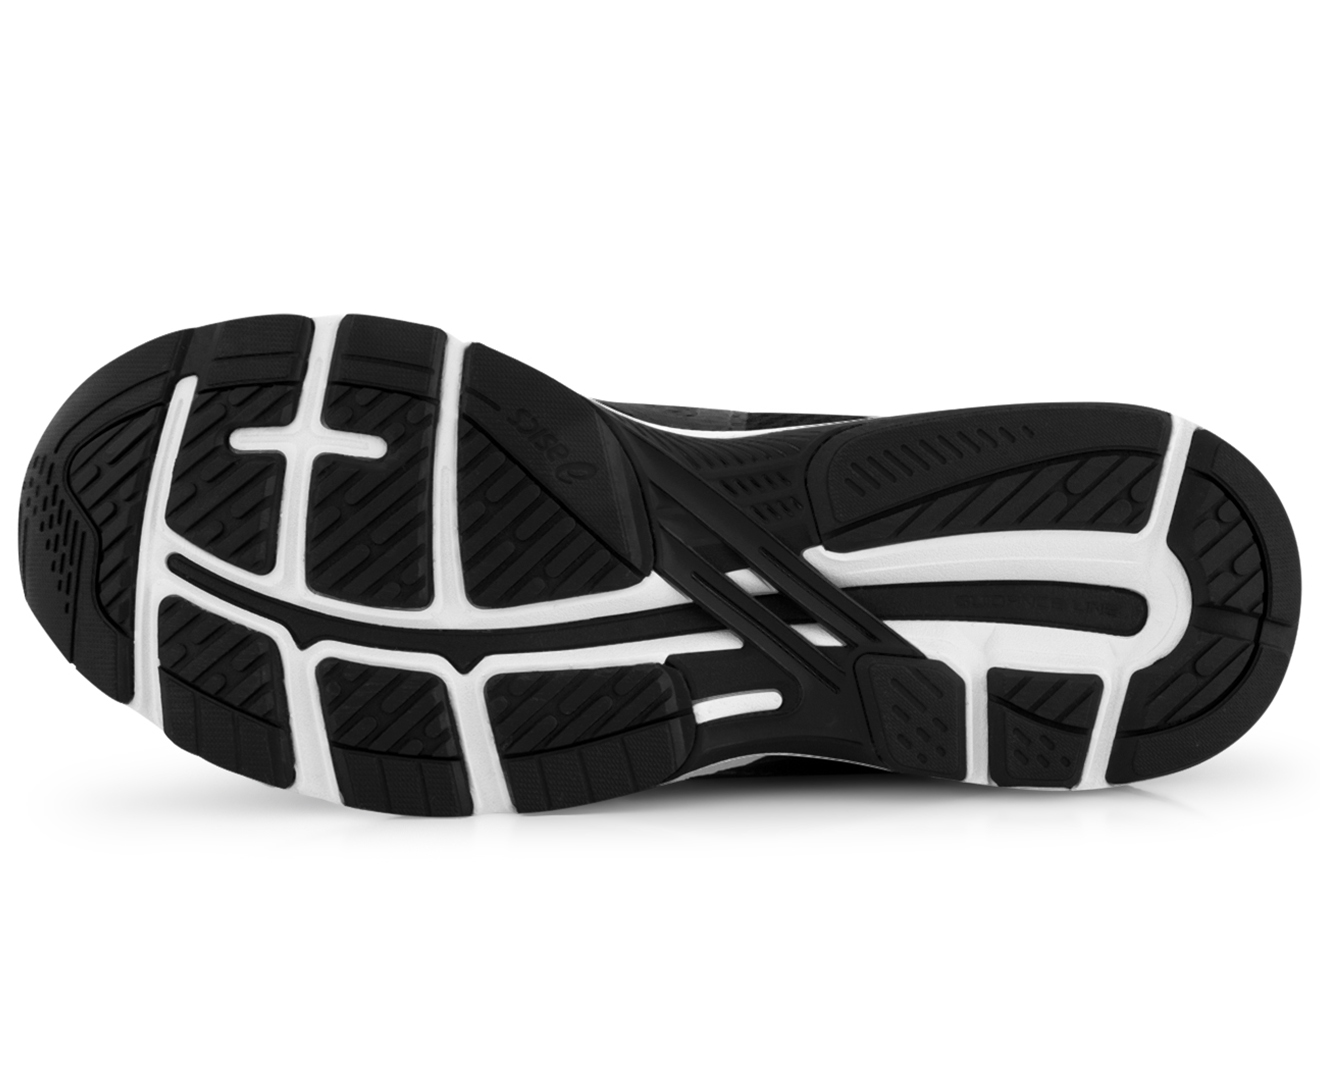 488c626648c967 ASICS Men s GT-2000 6 Shoe - Black White Carbon